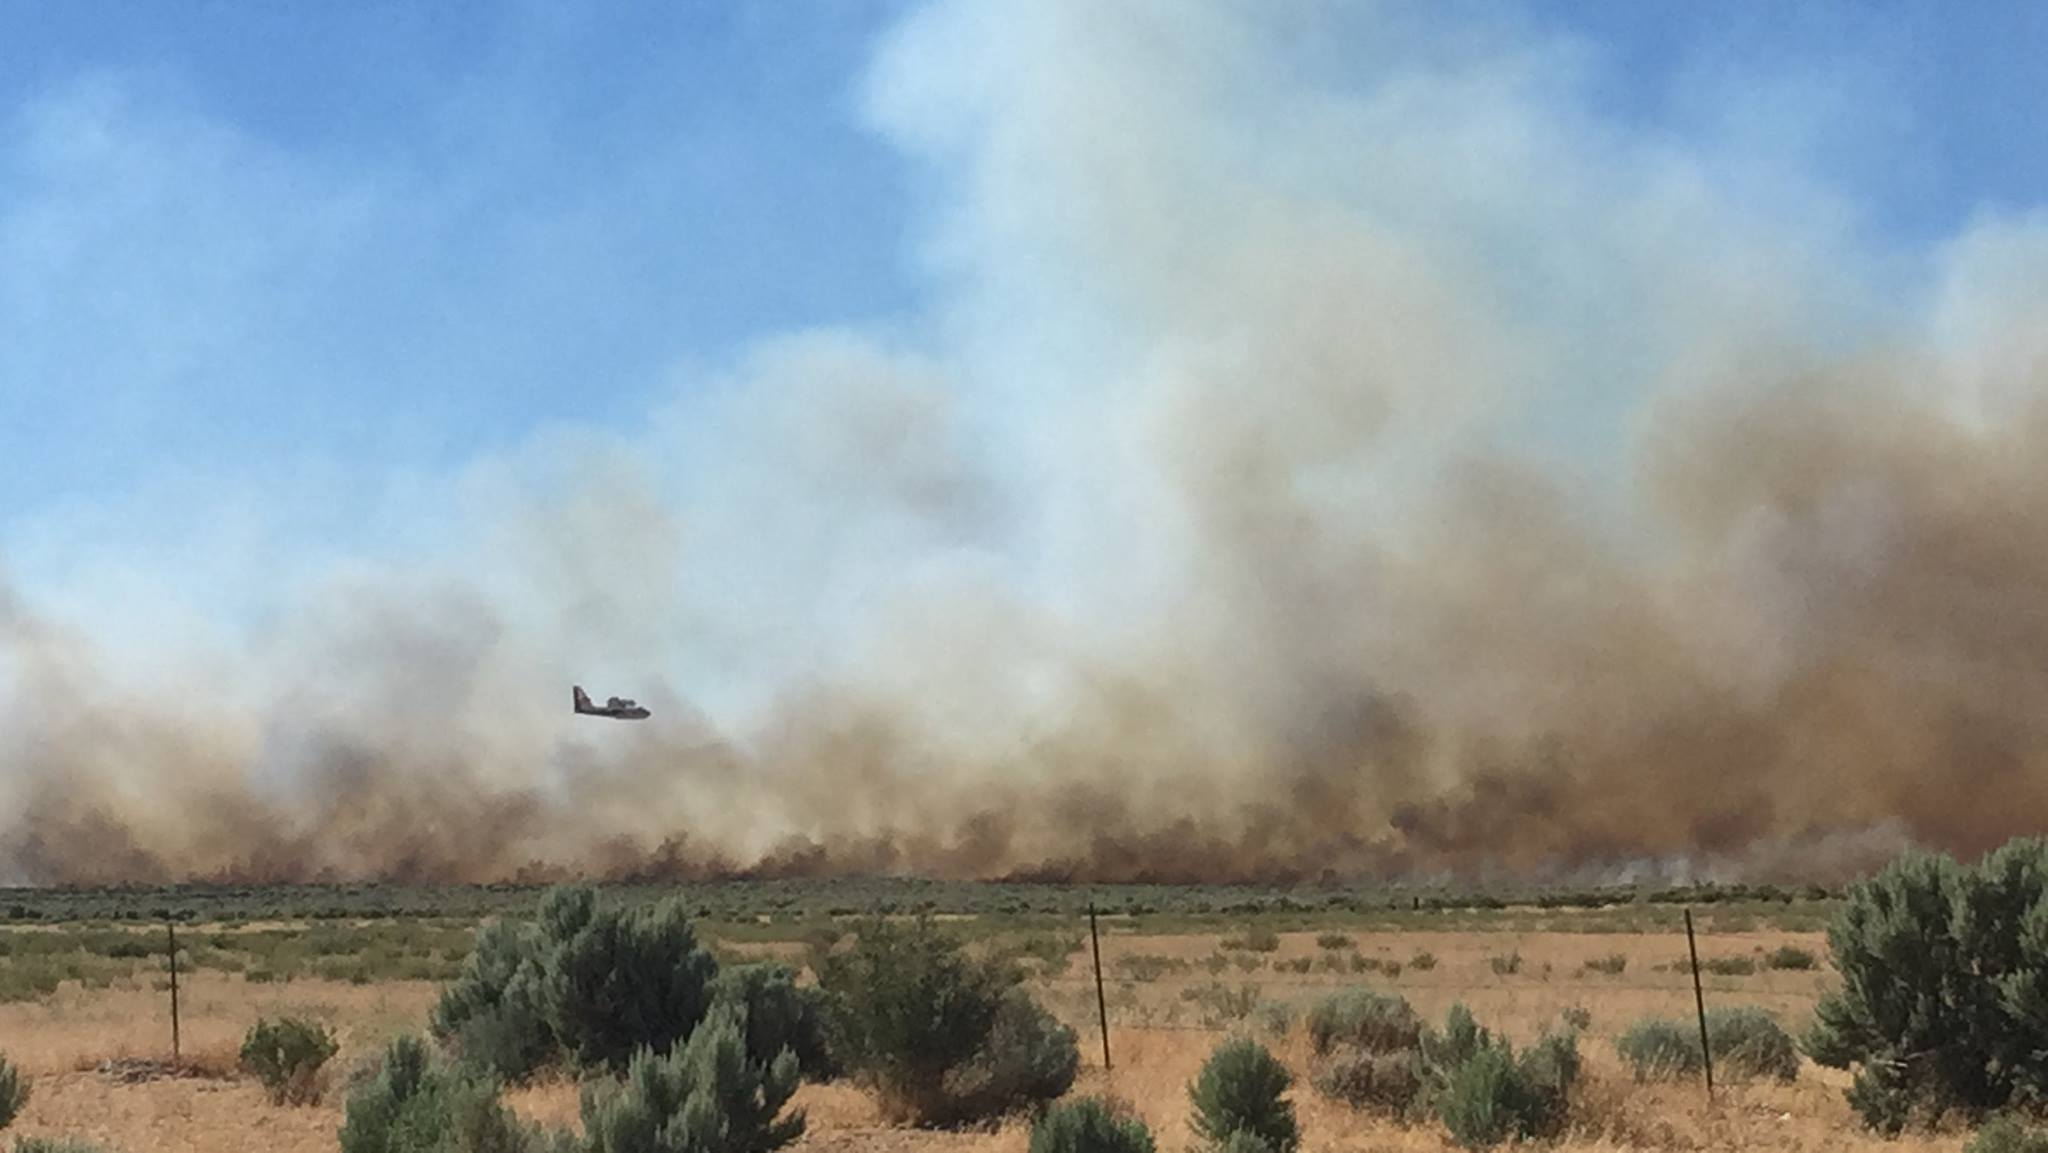 An air resources responds to the Long Valley Fire in Lassen County, California on Tuesday, July 11, 2017 (Photo: Lassen County Sheriff's Office)